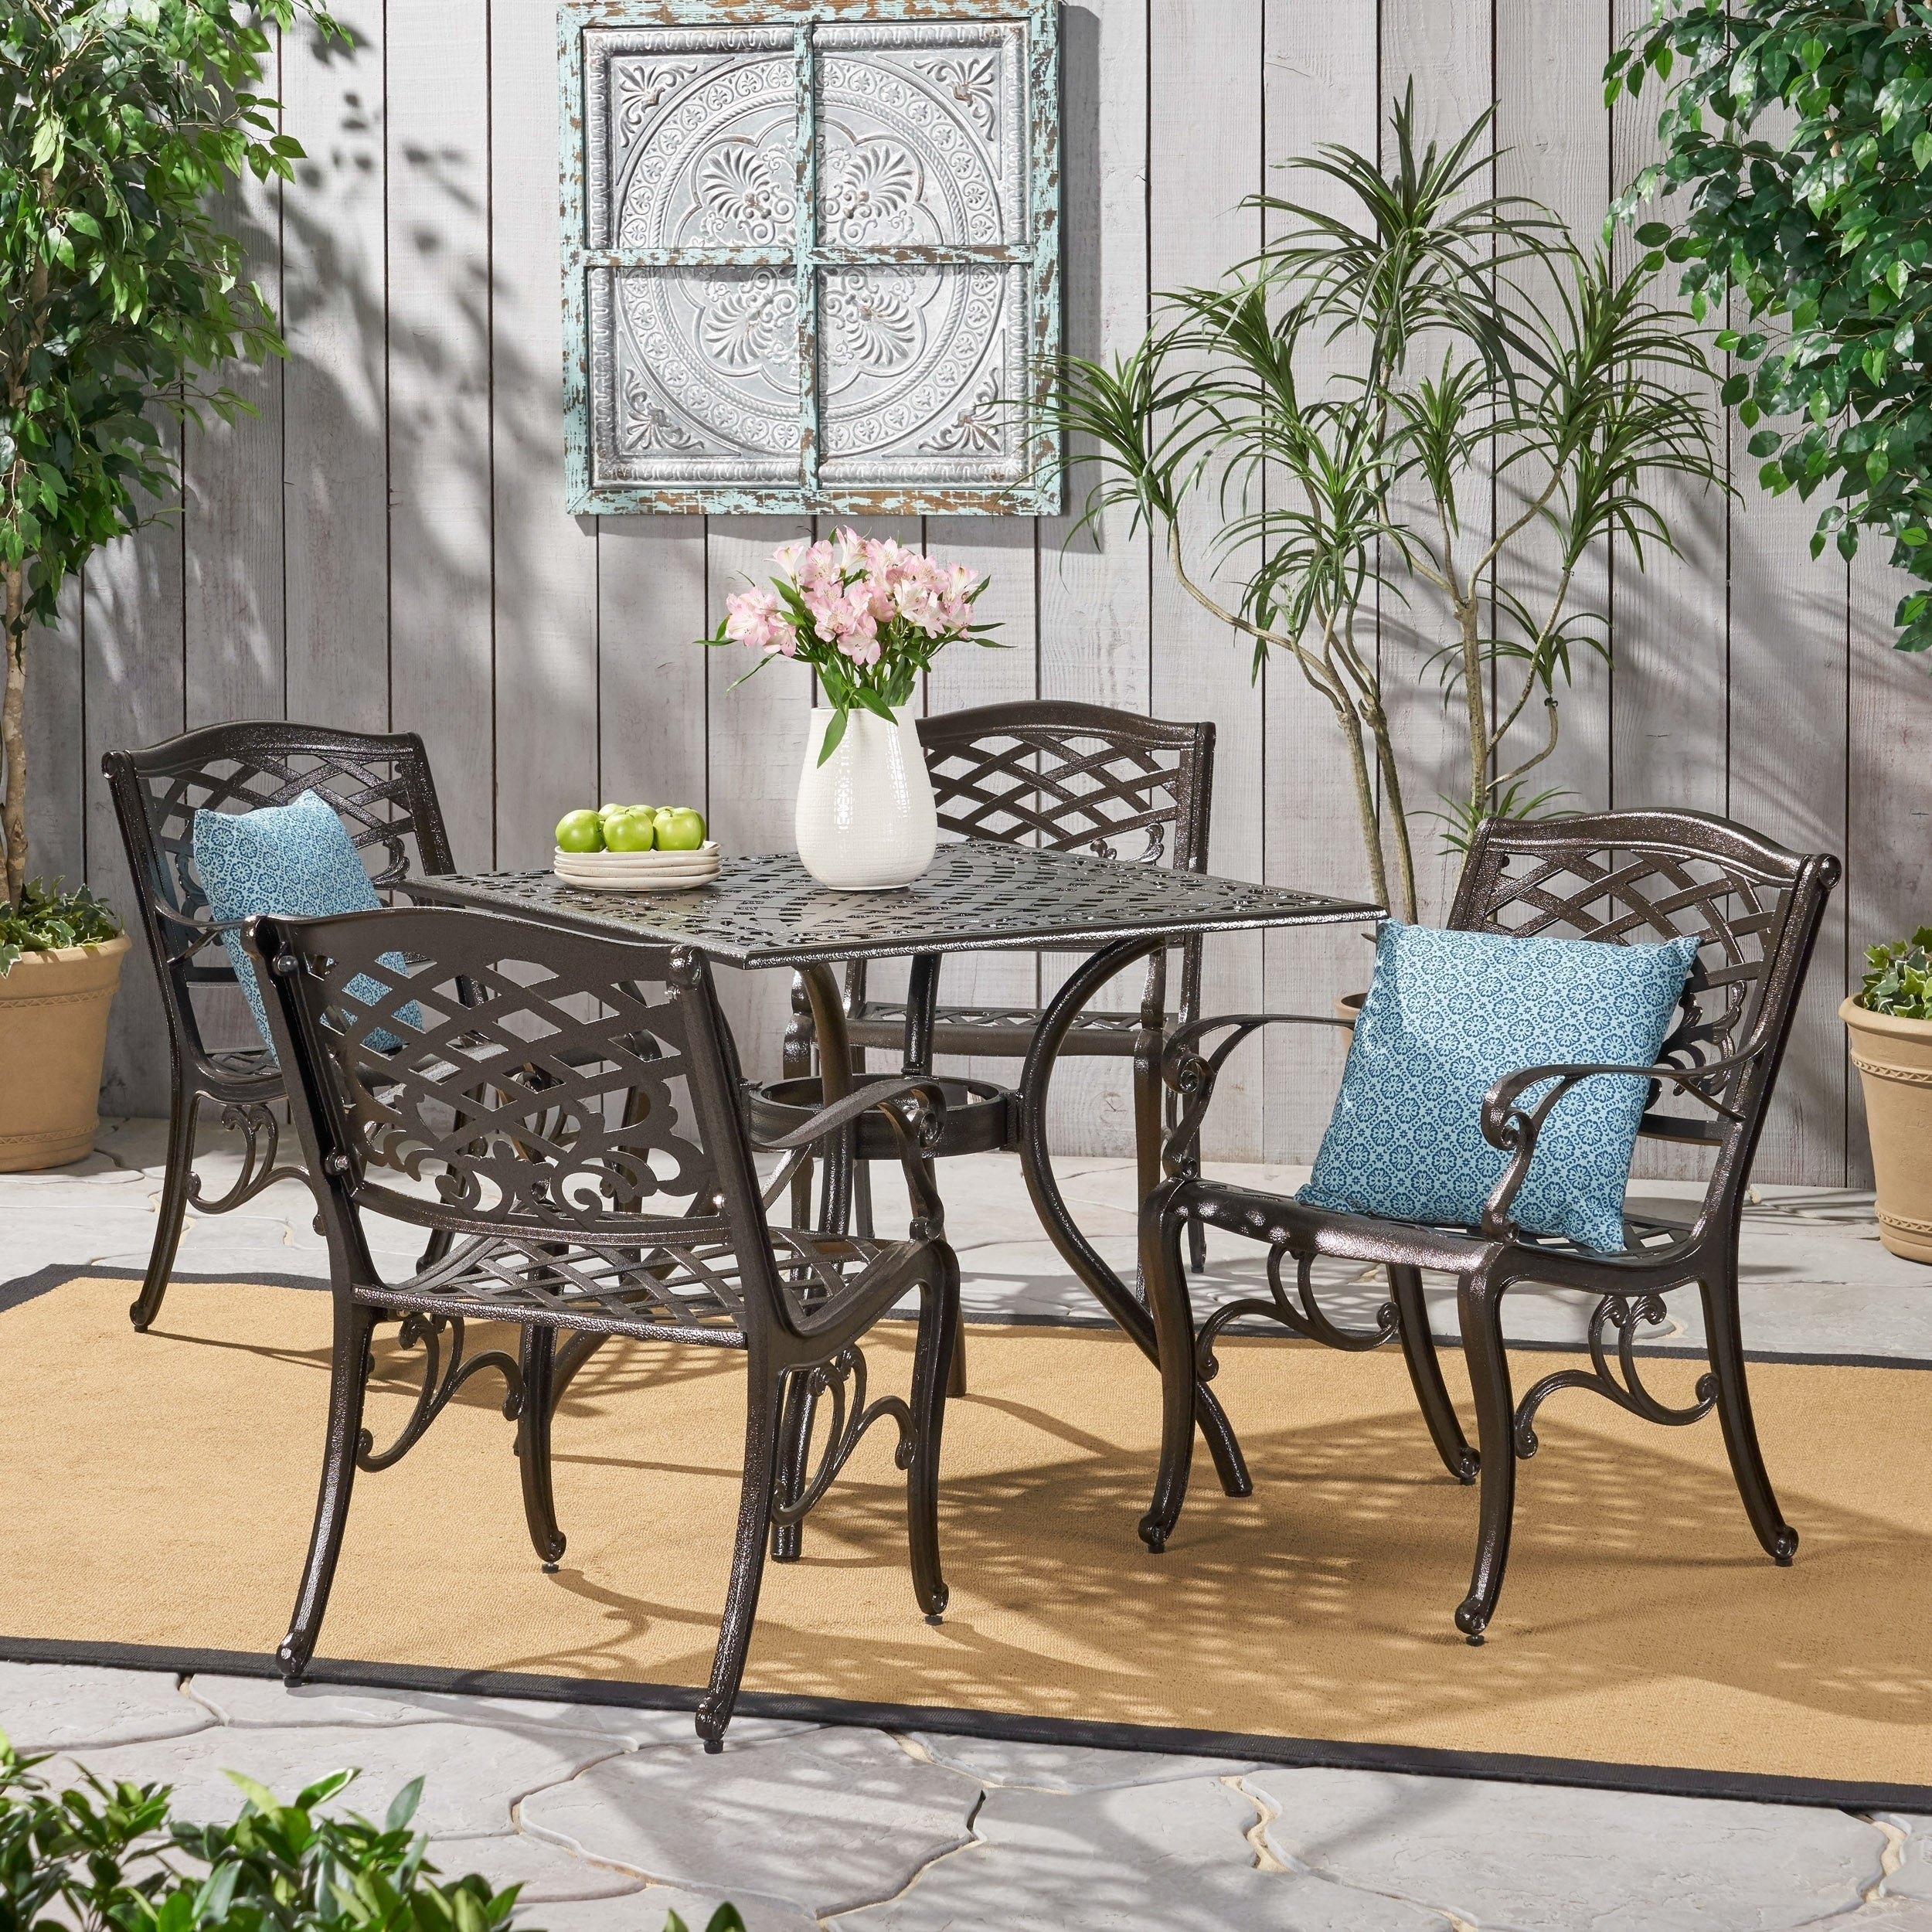 Picture of: Shop Black Friday Deals On Outdoor Hallandale 5 Piece Cast Aluminum Square Bronze Dining Set By Christopher Knight Home Overstock 11105154